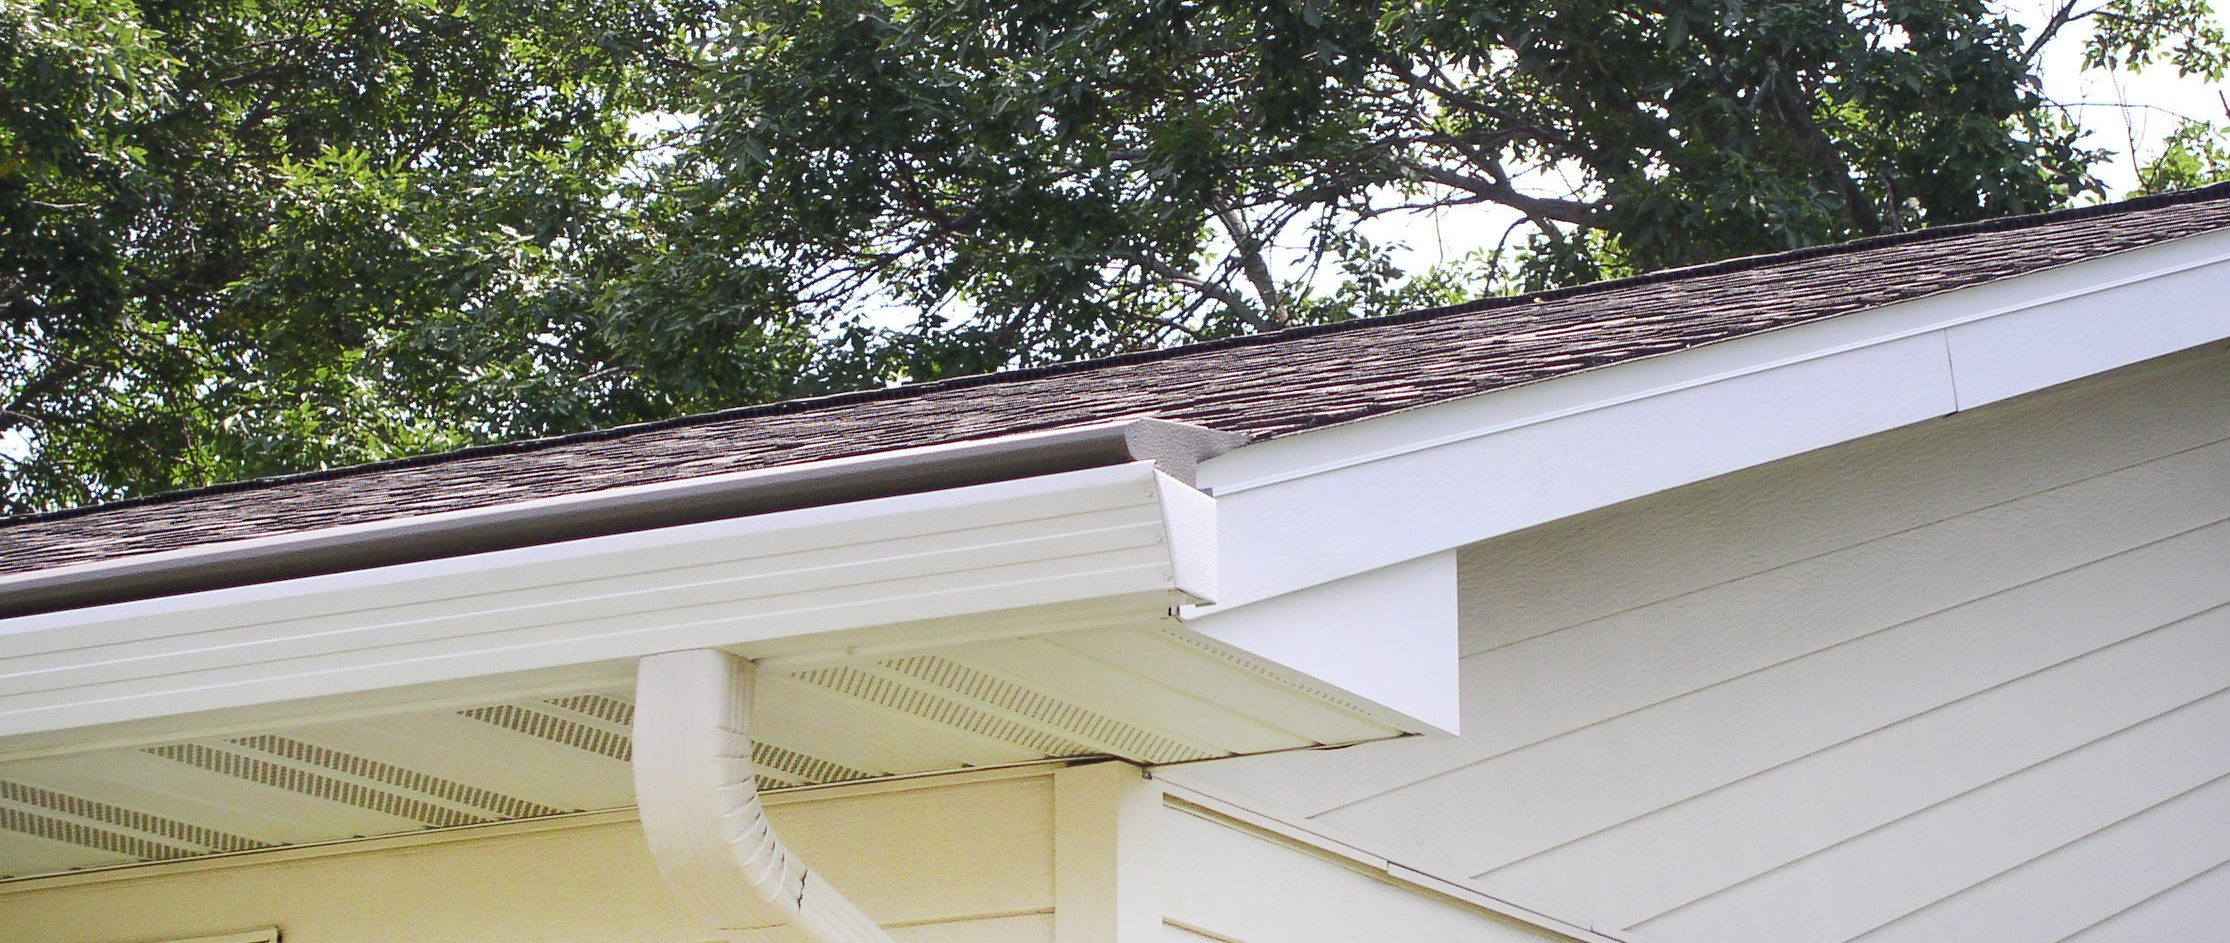 Gutter Protection System